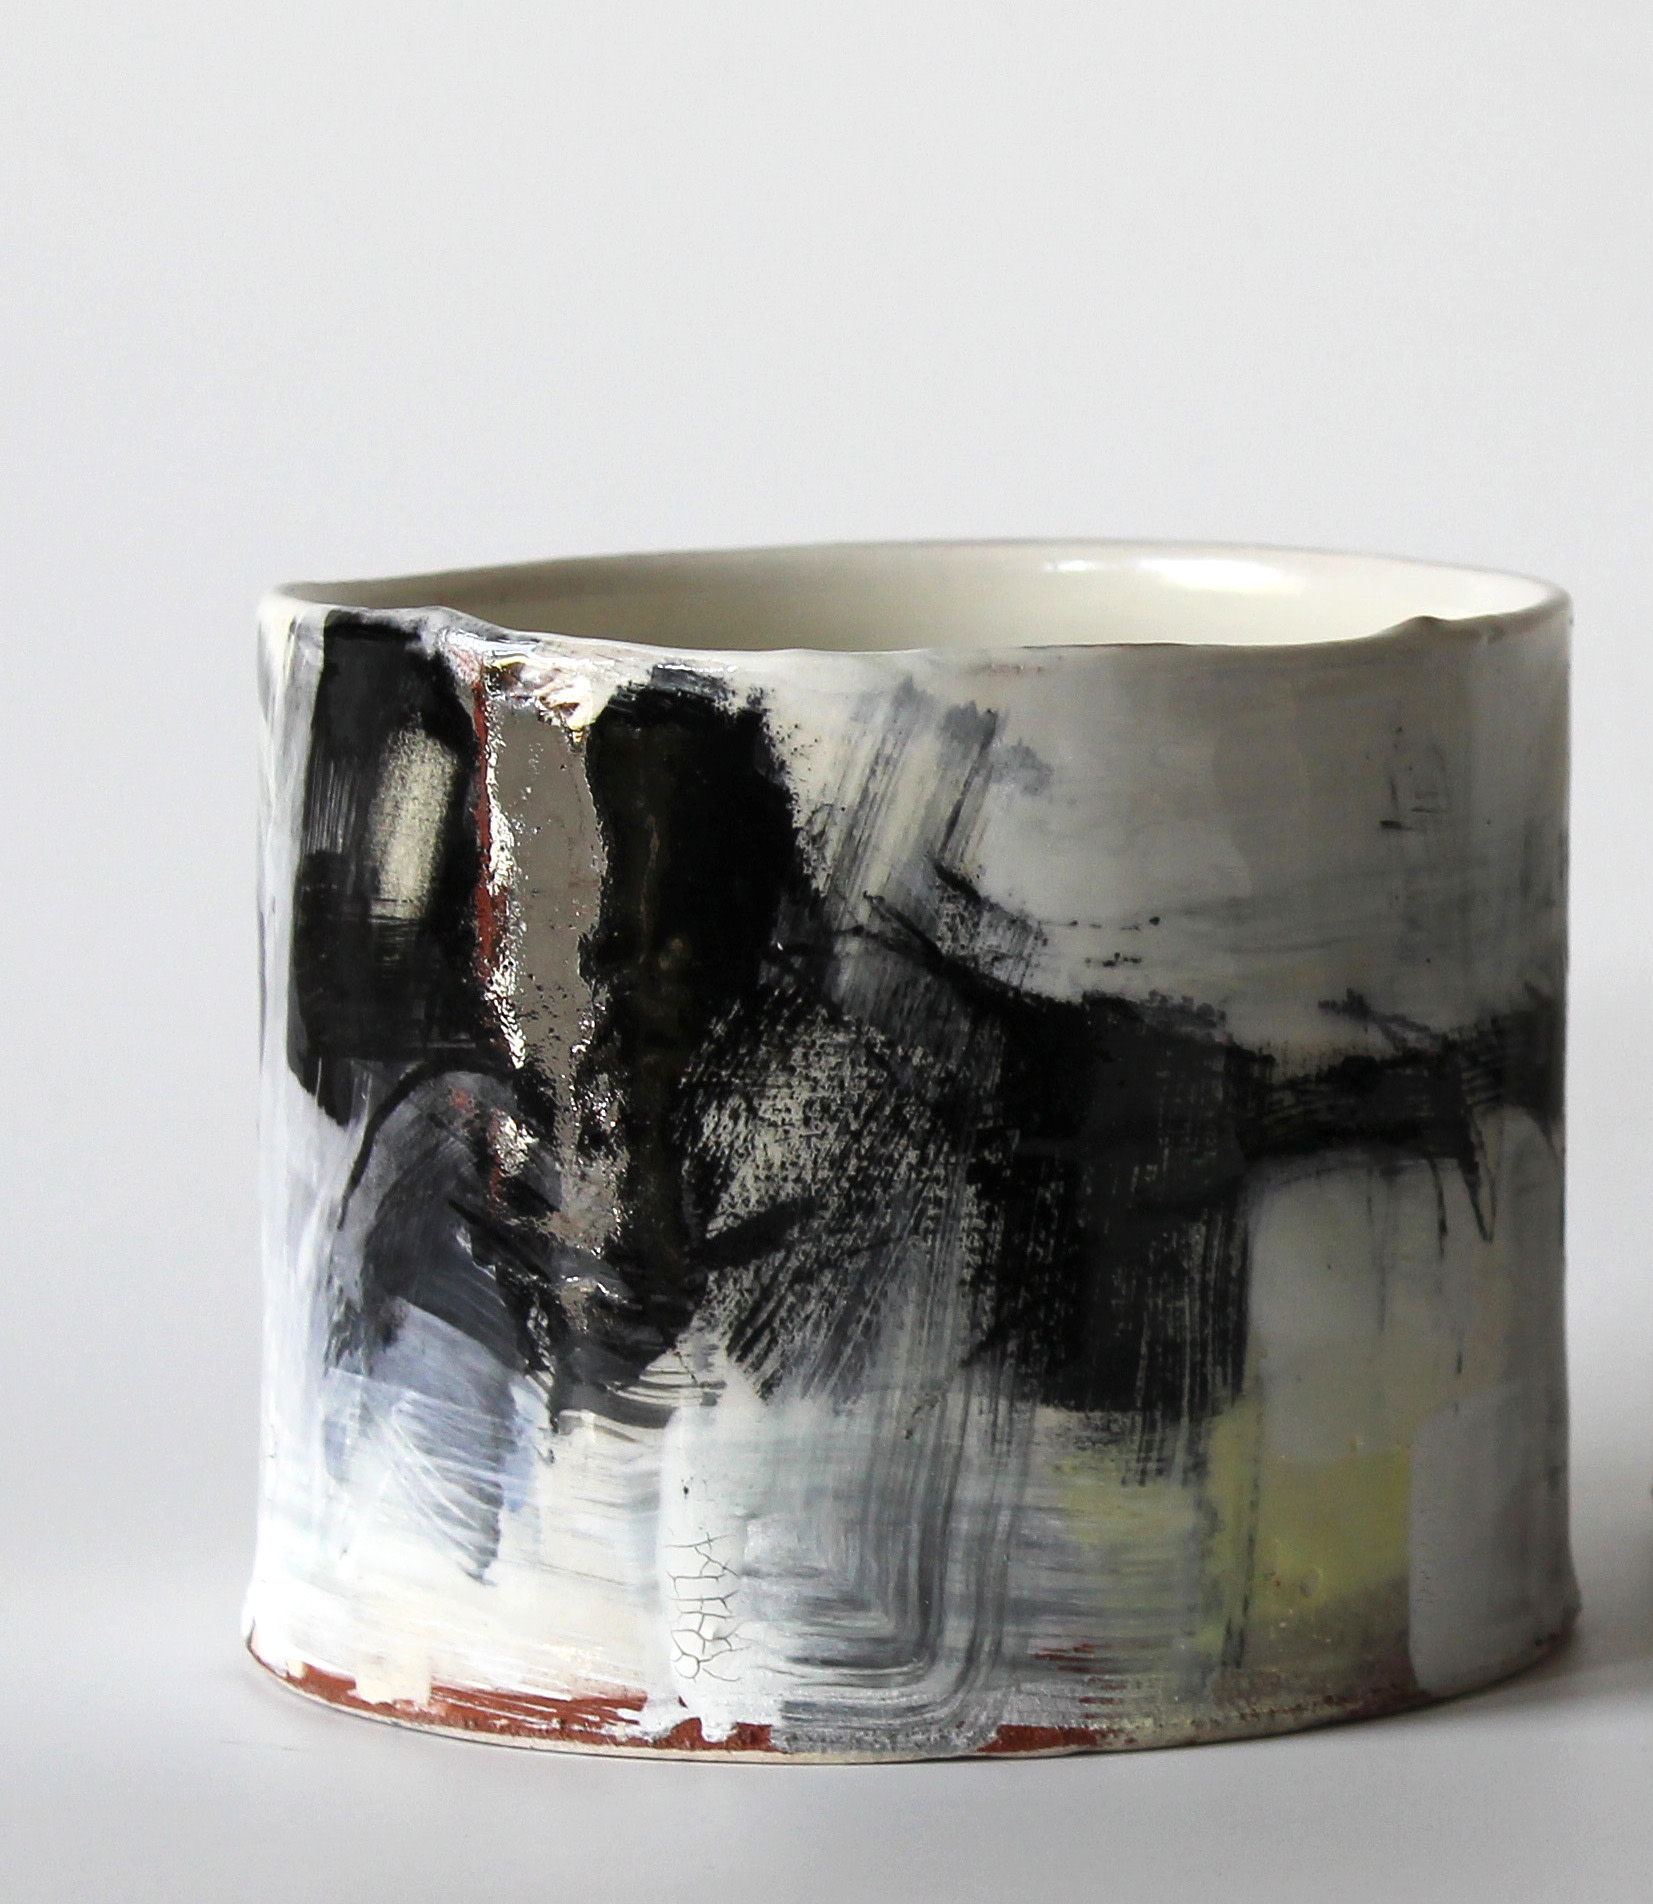 "<span class=""link fancybox-details-link""><a href=""/artists/34-barry-stedman/works/4150-barry-stedman-thrown-vessel-coast-series-2017/"">View Detail Page</a></span><div class=""artist""><strong>Barry Stedman</strong></div> <div class=""title""><em>Thrown Vessel 'Coast' Series</em>, 2017</div> <div class=""signed_and_dated"">signed by artist</div> <div class=""medium"">earthenware</div> <div class=""dimensions"">11 x 13 cm<br /> 4 3/8 x 5 1/8 inches</div><div class=""copyright_line"">OwnArt: £ 27.50 x 10 Months, 0% APR</div>"